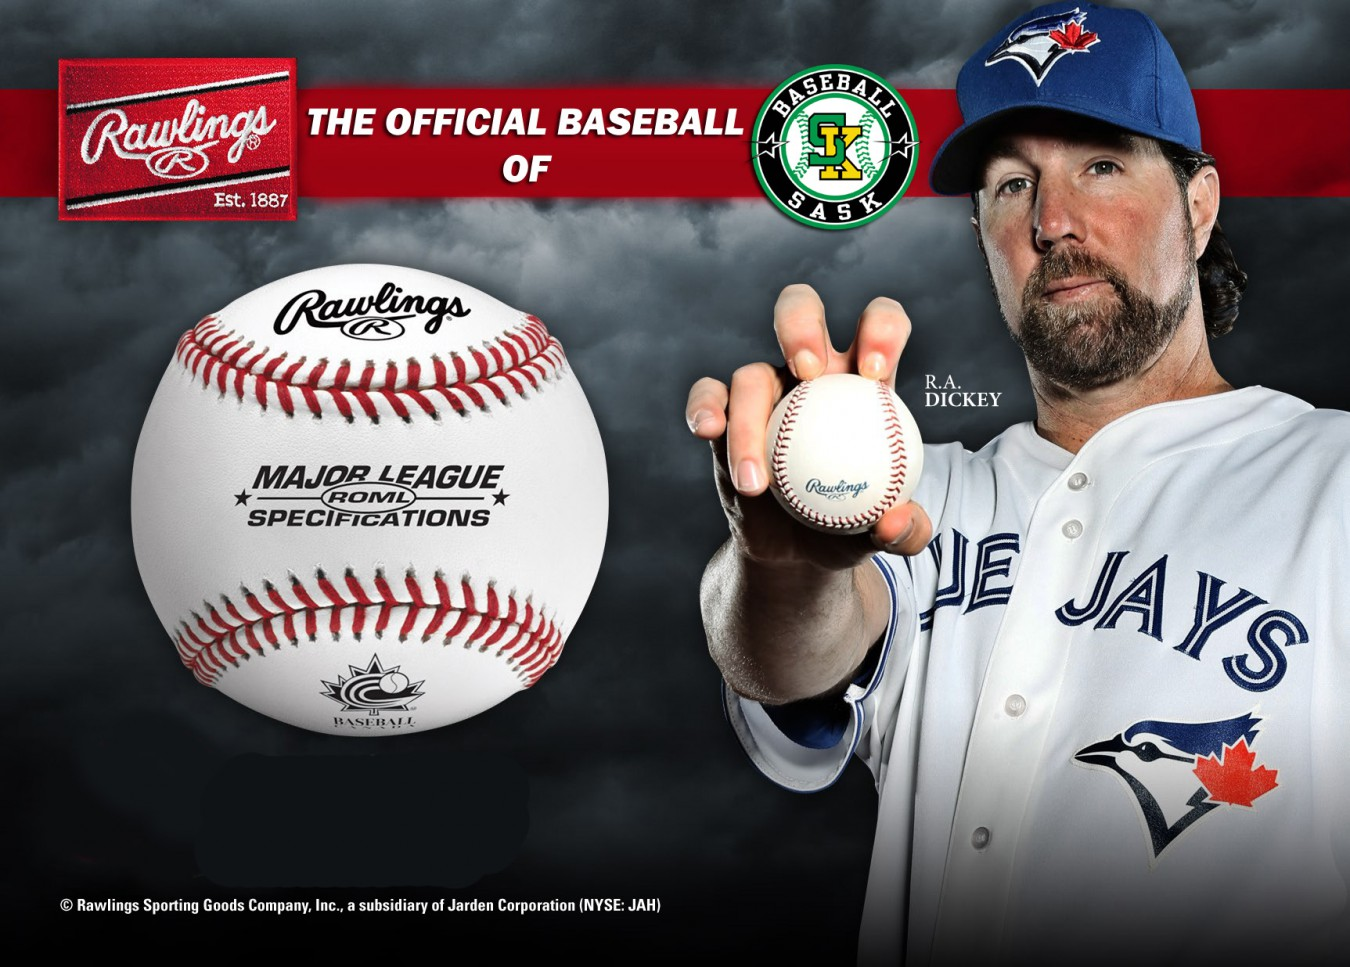 Sask Baseball And Rawlings Form New Partnership